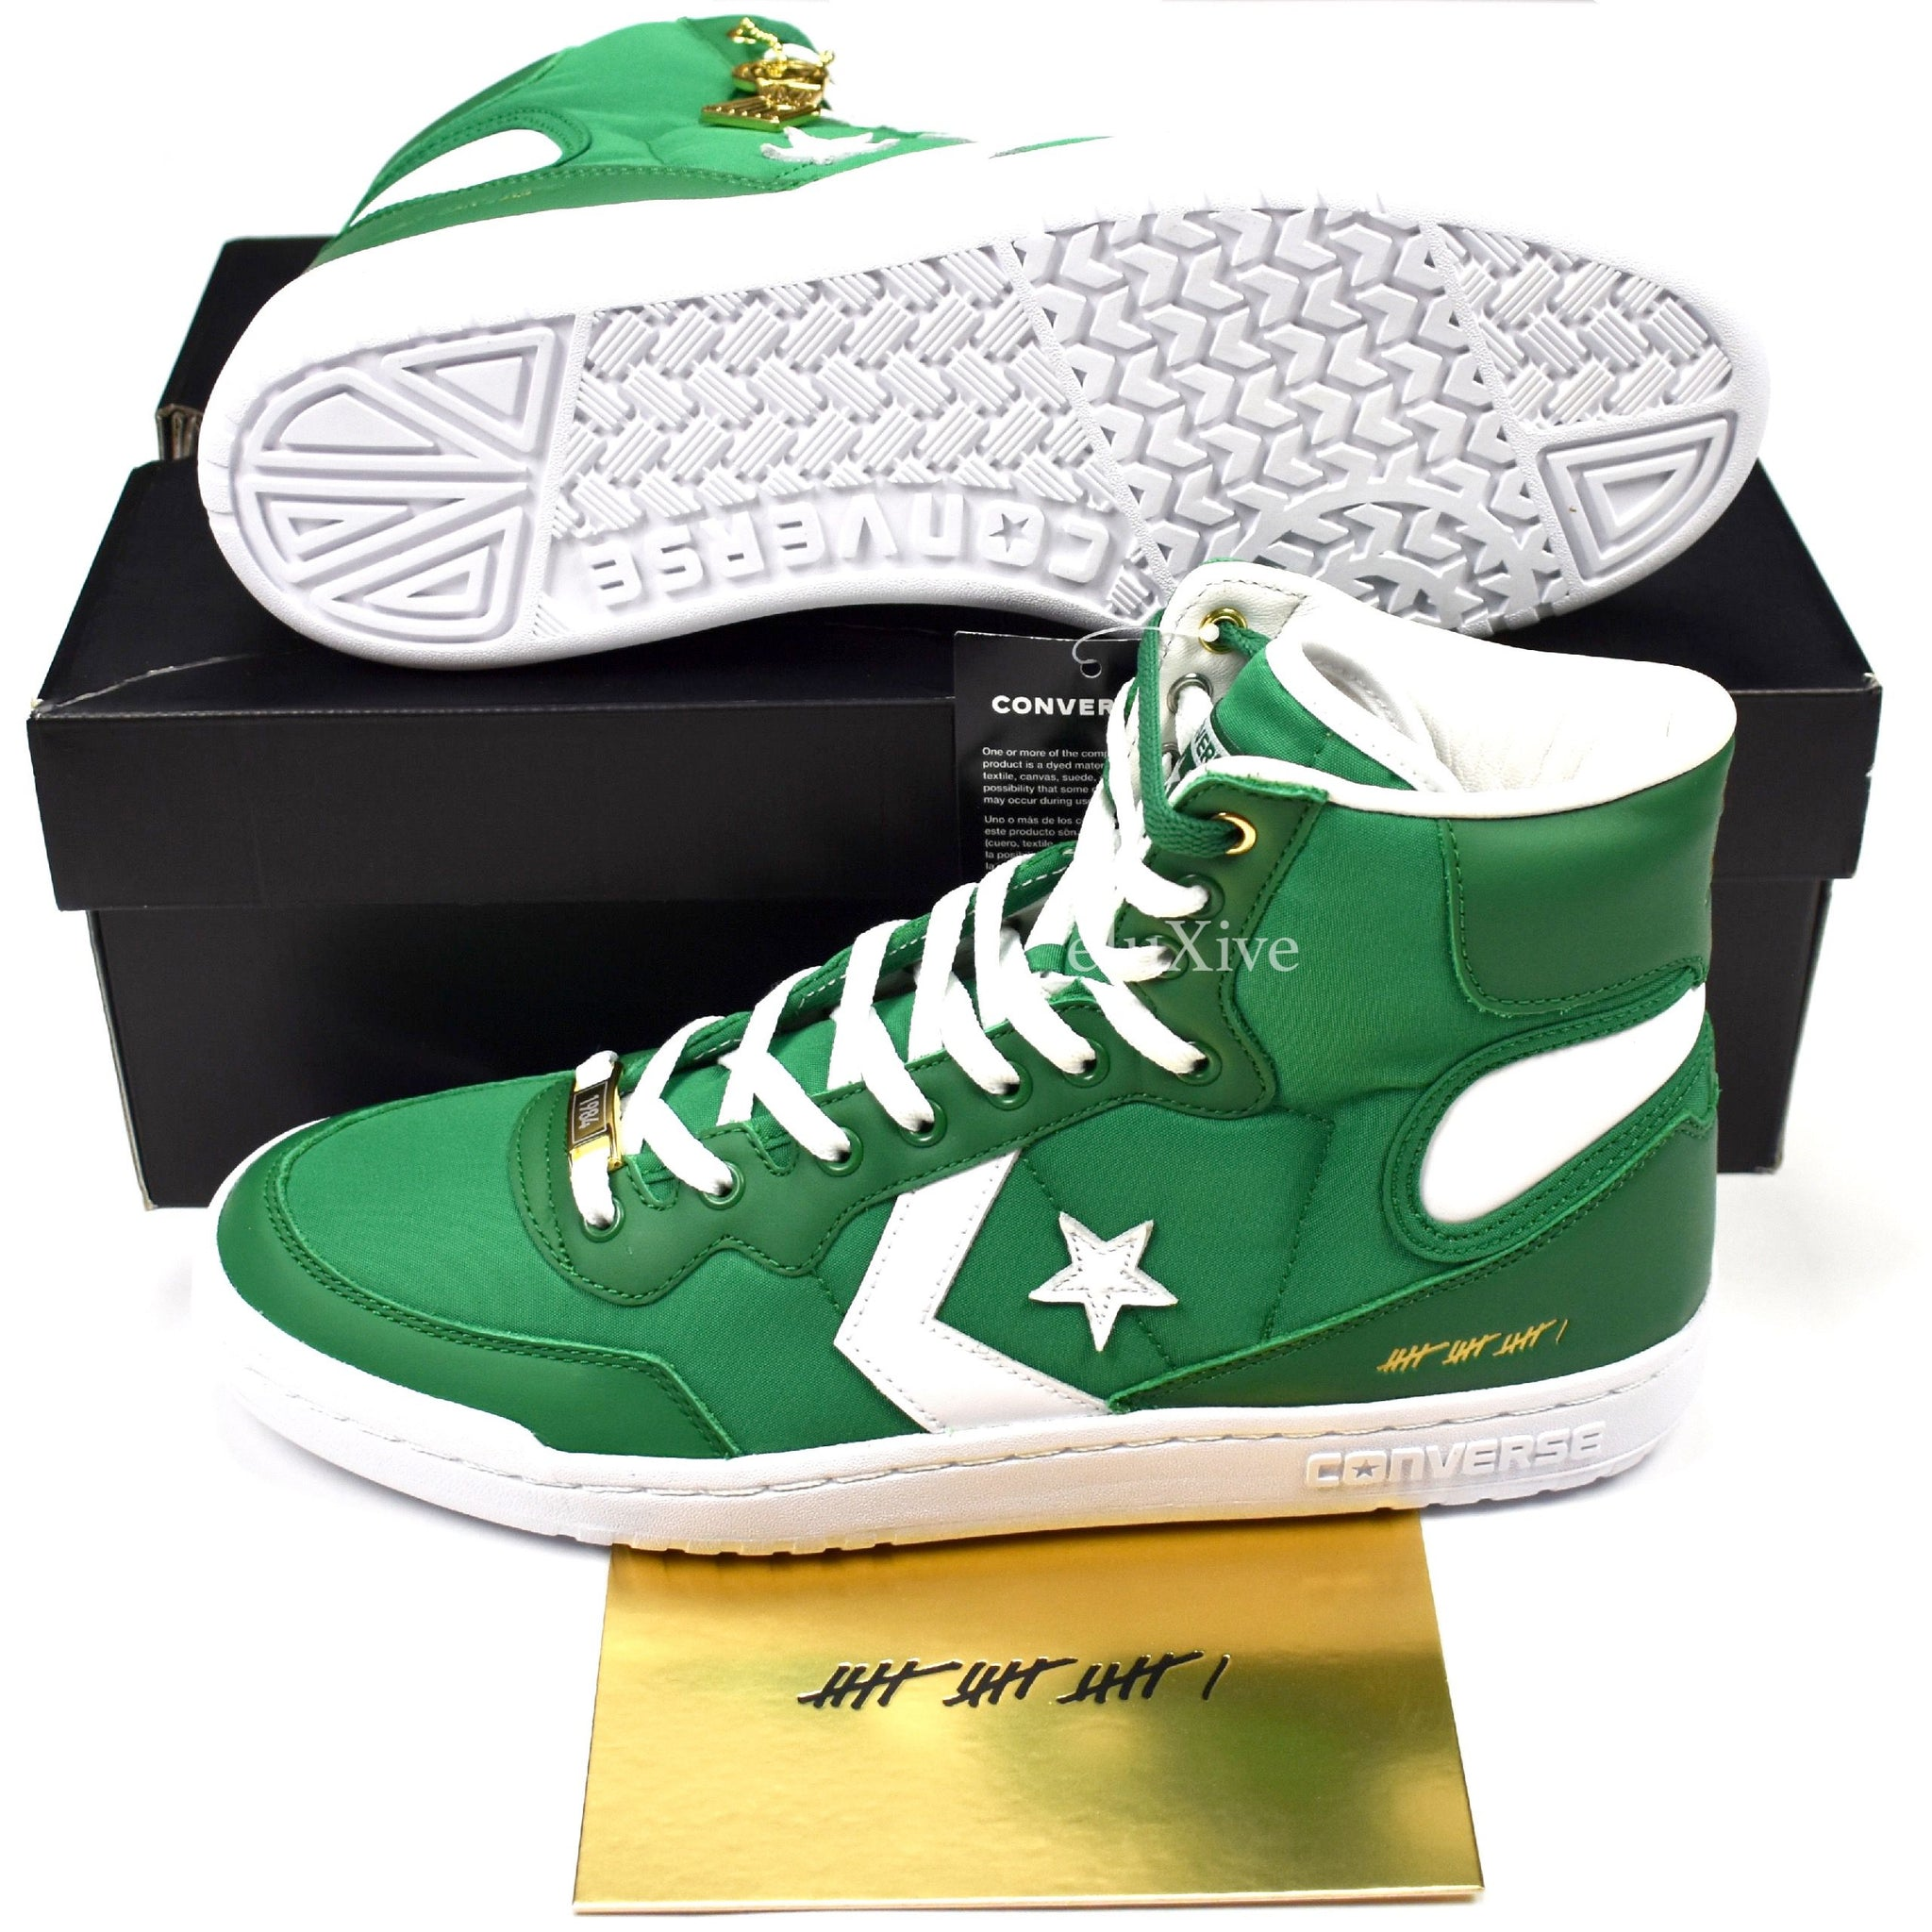 Converse - Fastbreak Hi 'Think 16'